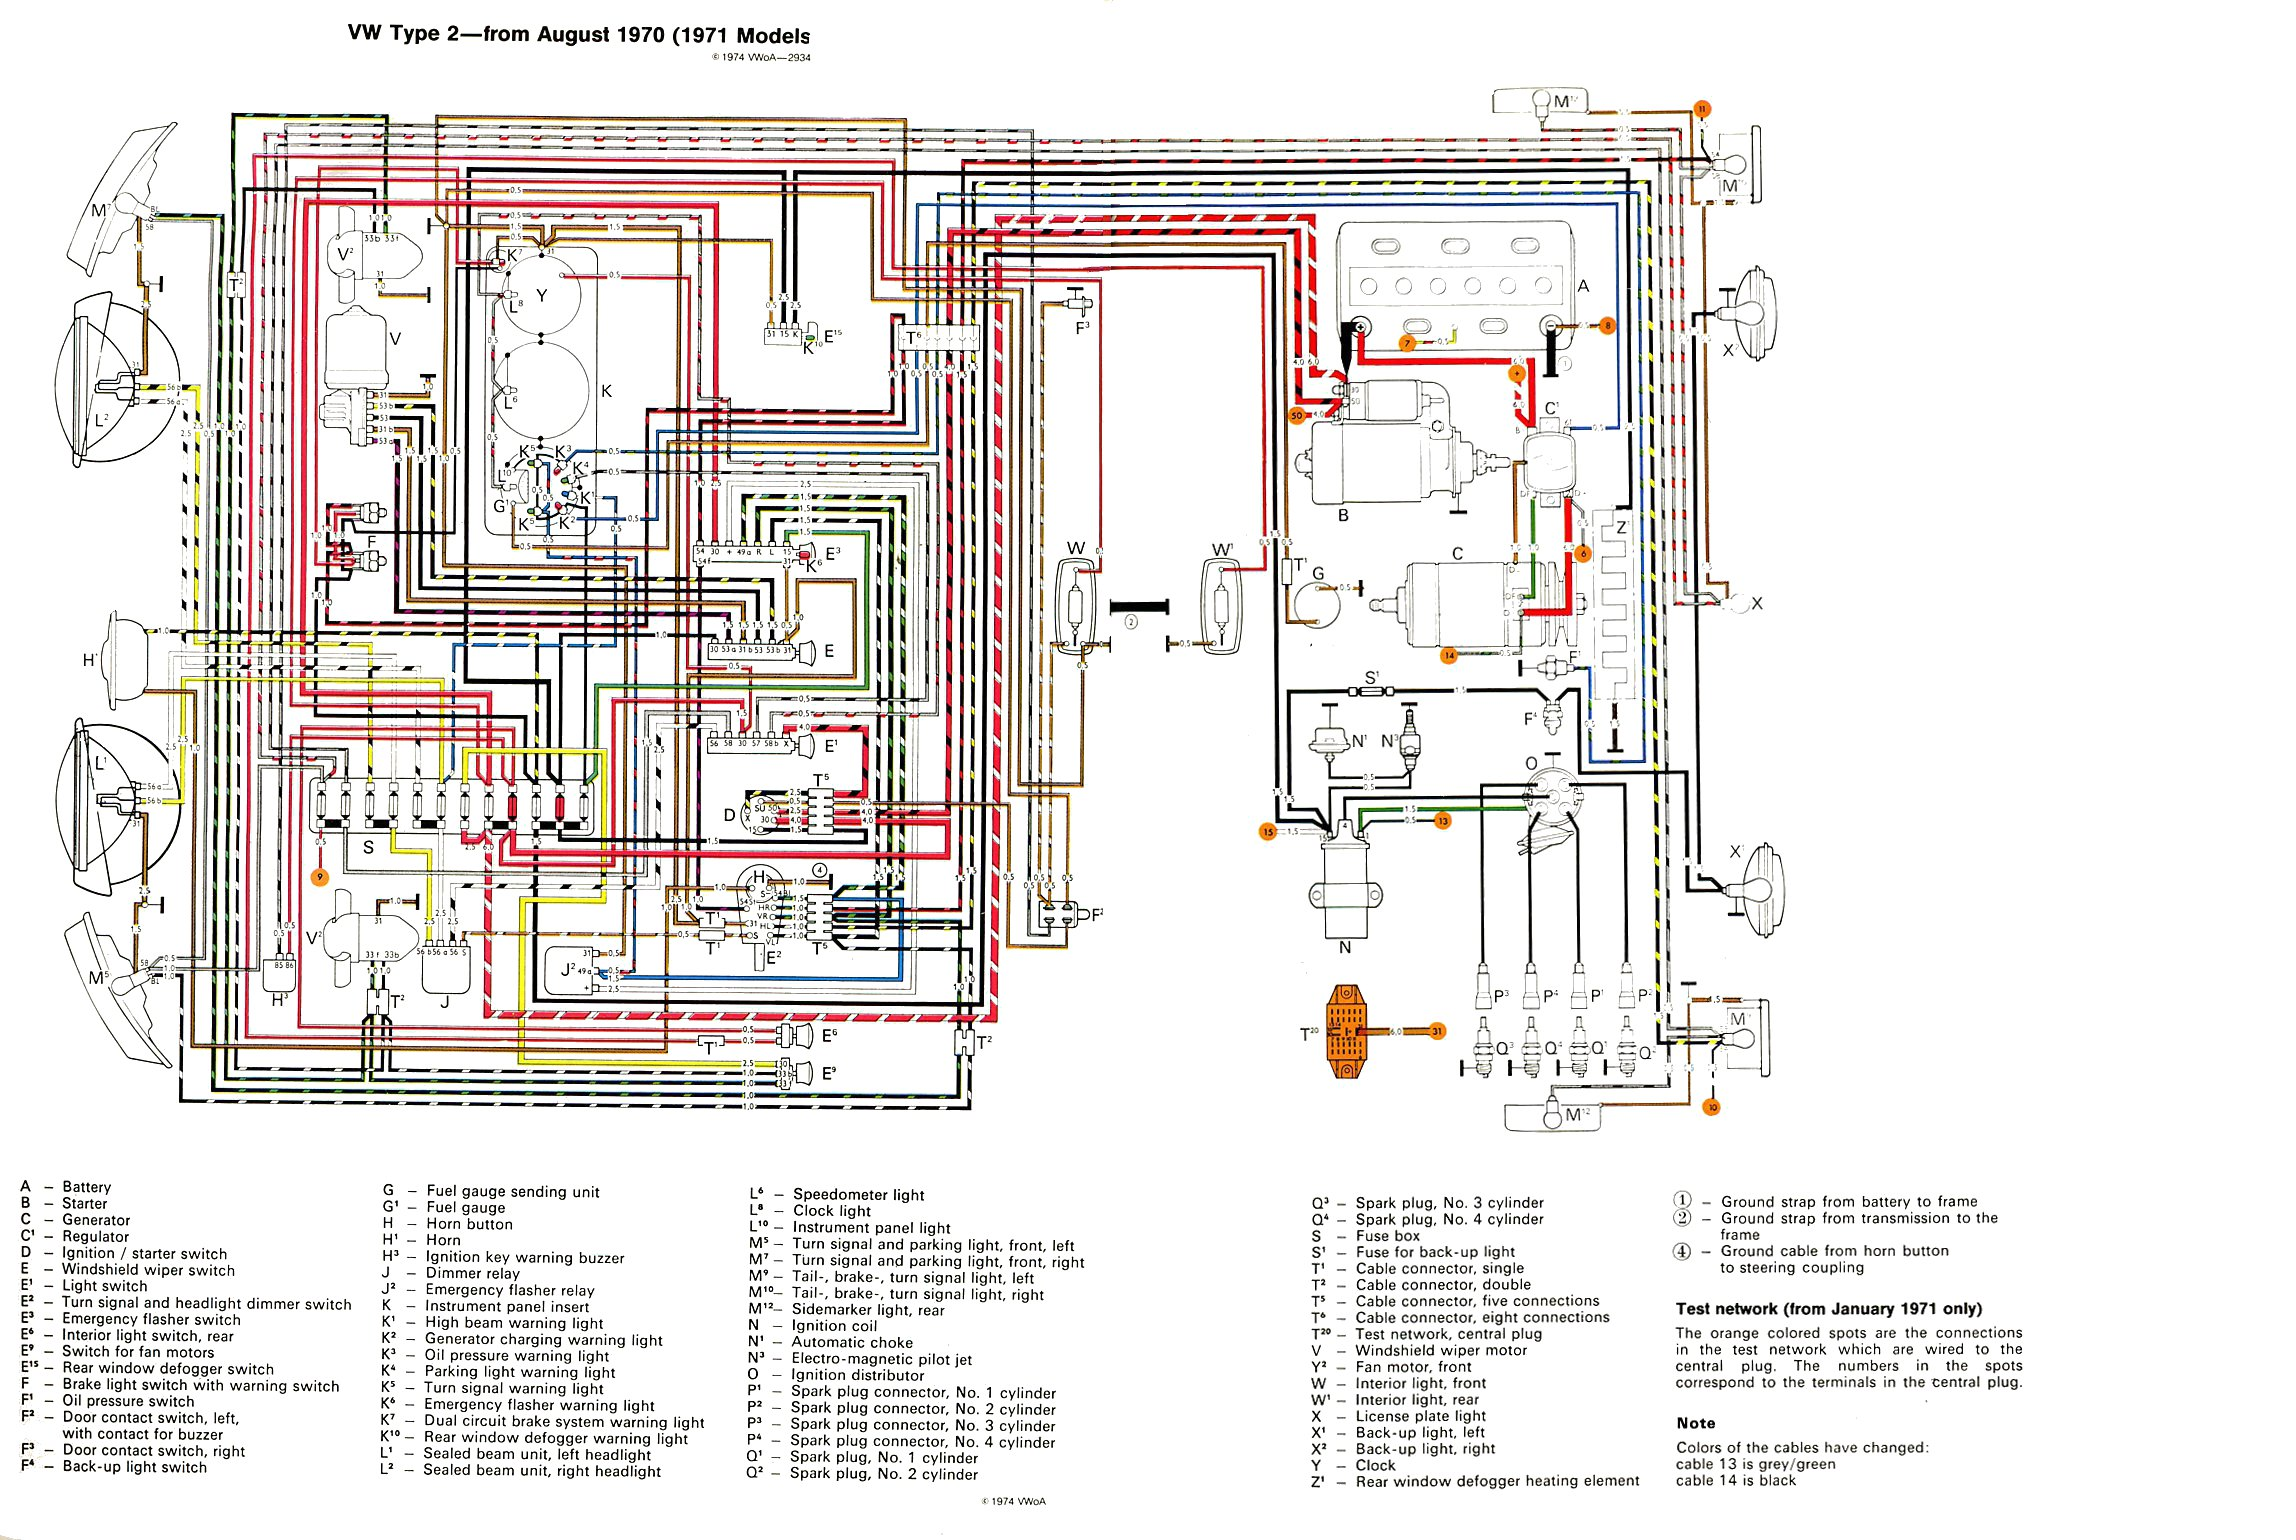 baybus_71 thesamba com type 2 wiring diagrams fuse box wiring diagram at webbmarketing.co